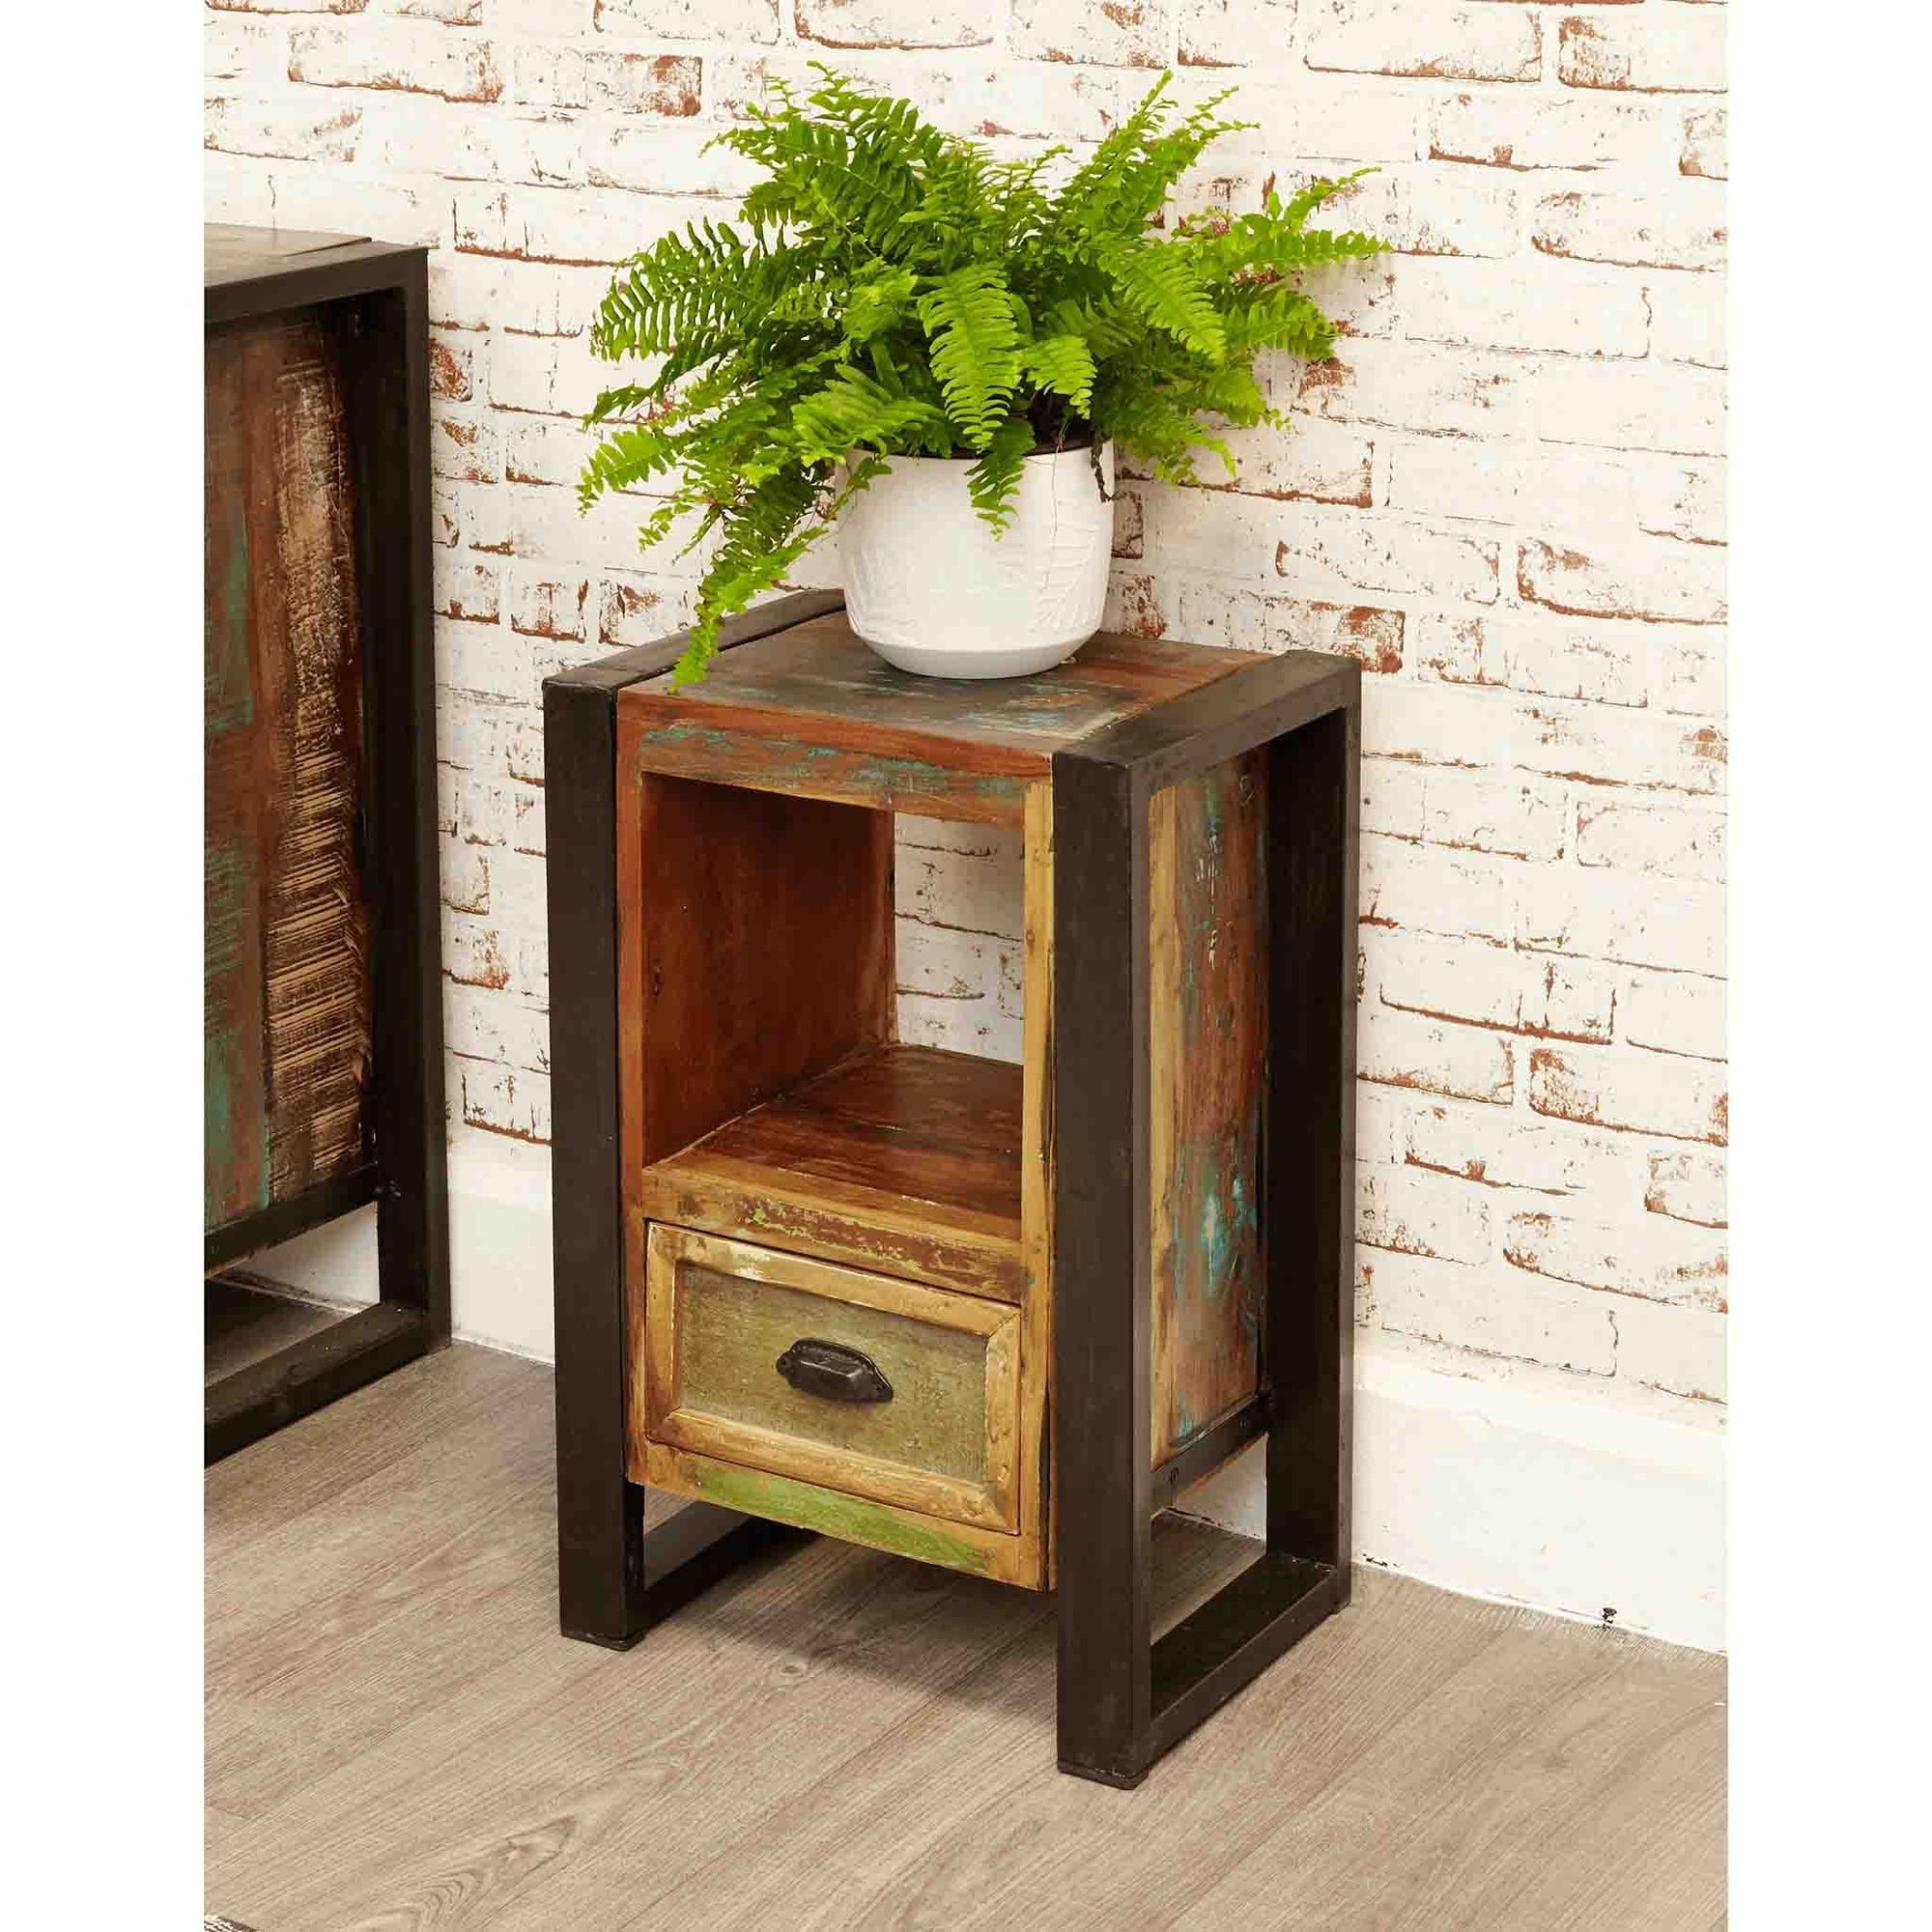 Picture of: Steel Reclaimed Wood Lamp Bedside Cabinet With Drawer Urban Chic Roseland Furniture